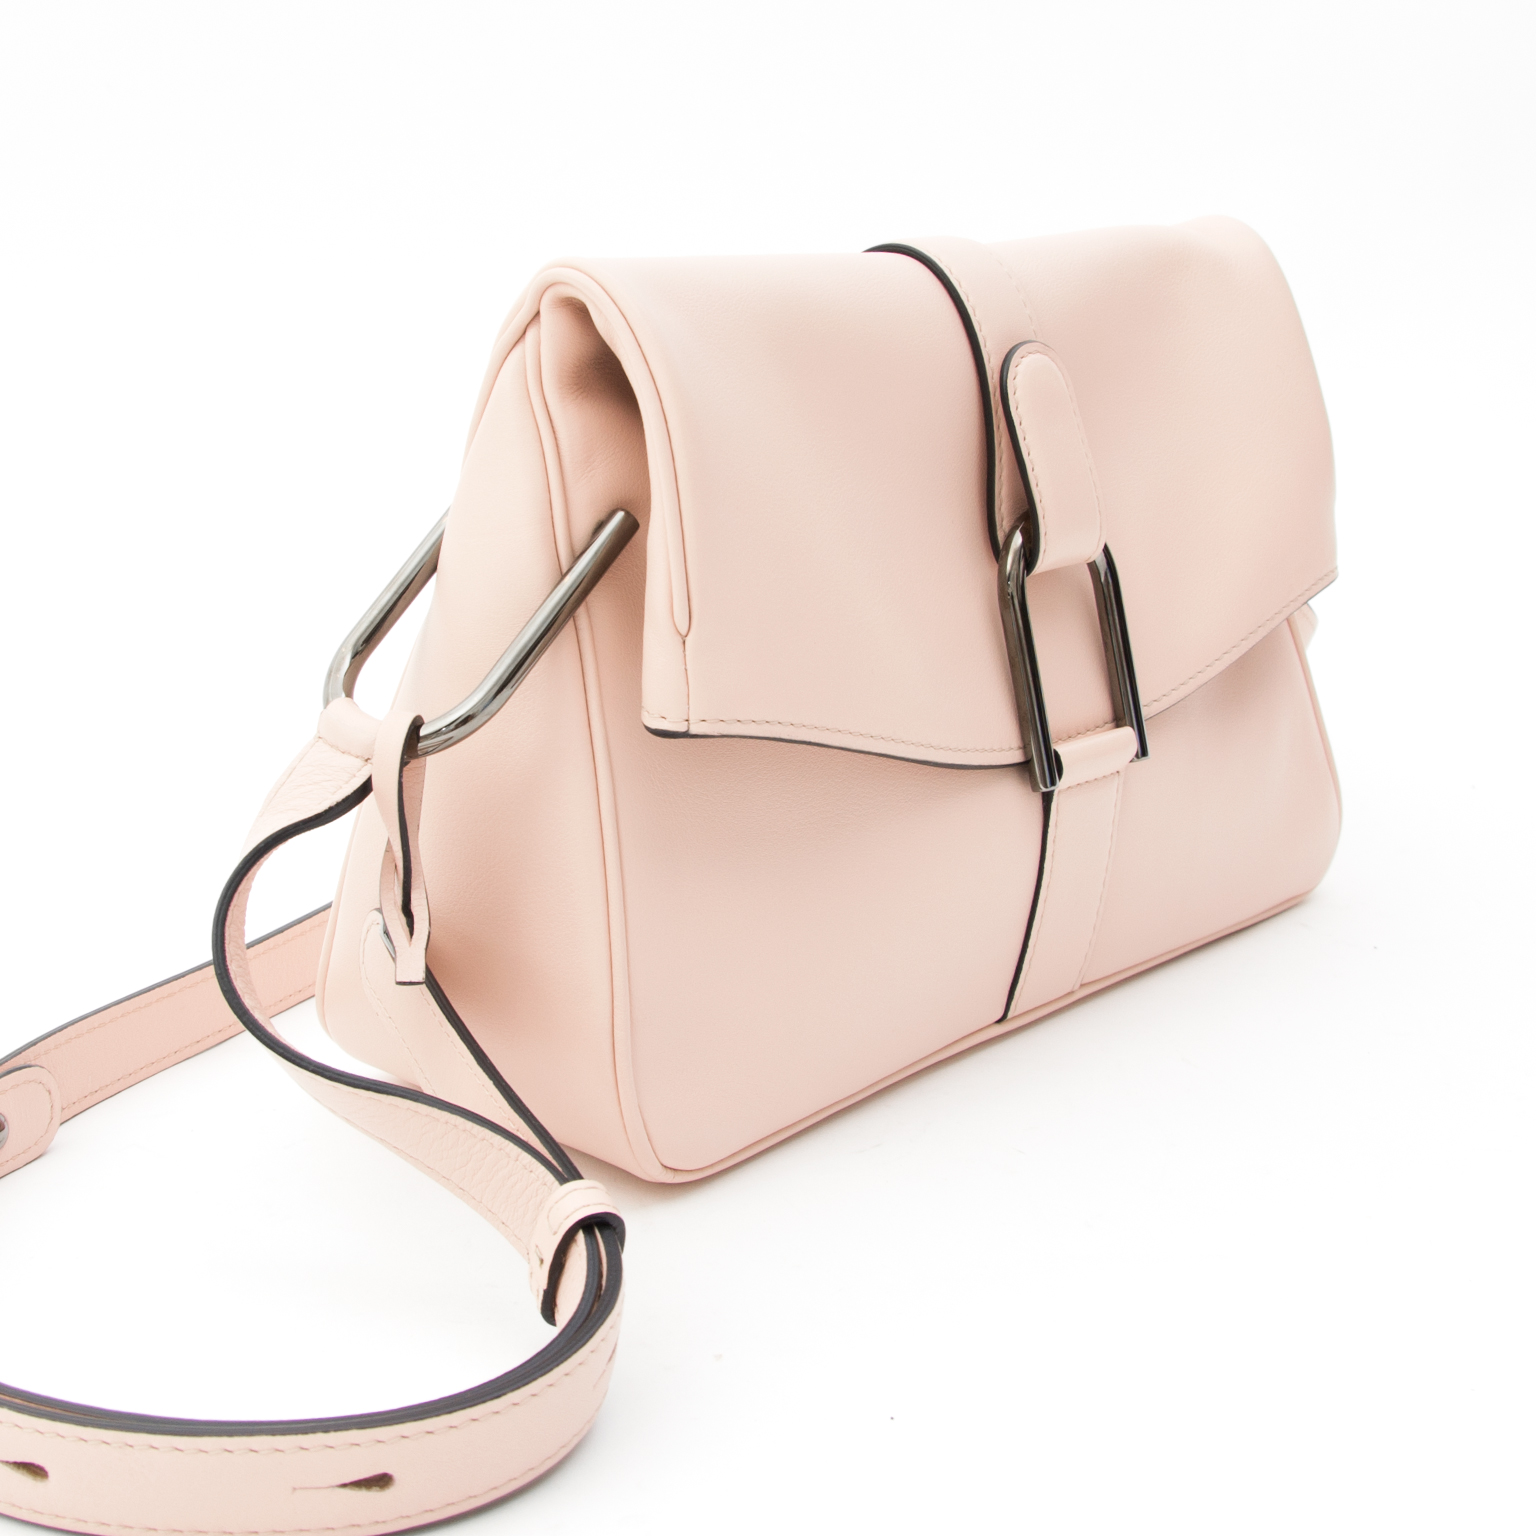 This Delvaux bag is a crafted in Polo calfskin with a matte finish and very small pores.  The color 'Nude' is a pastel pink or very light 'rose poudrée'.  Dark metallic hardware.